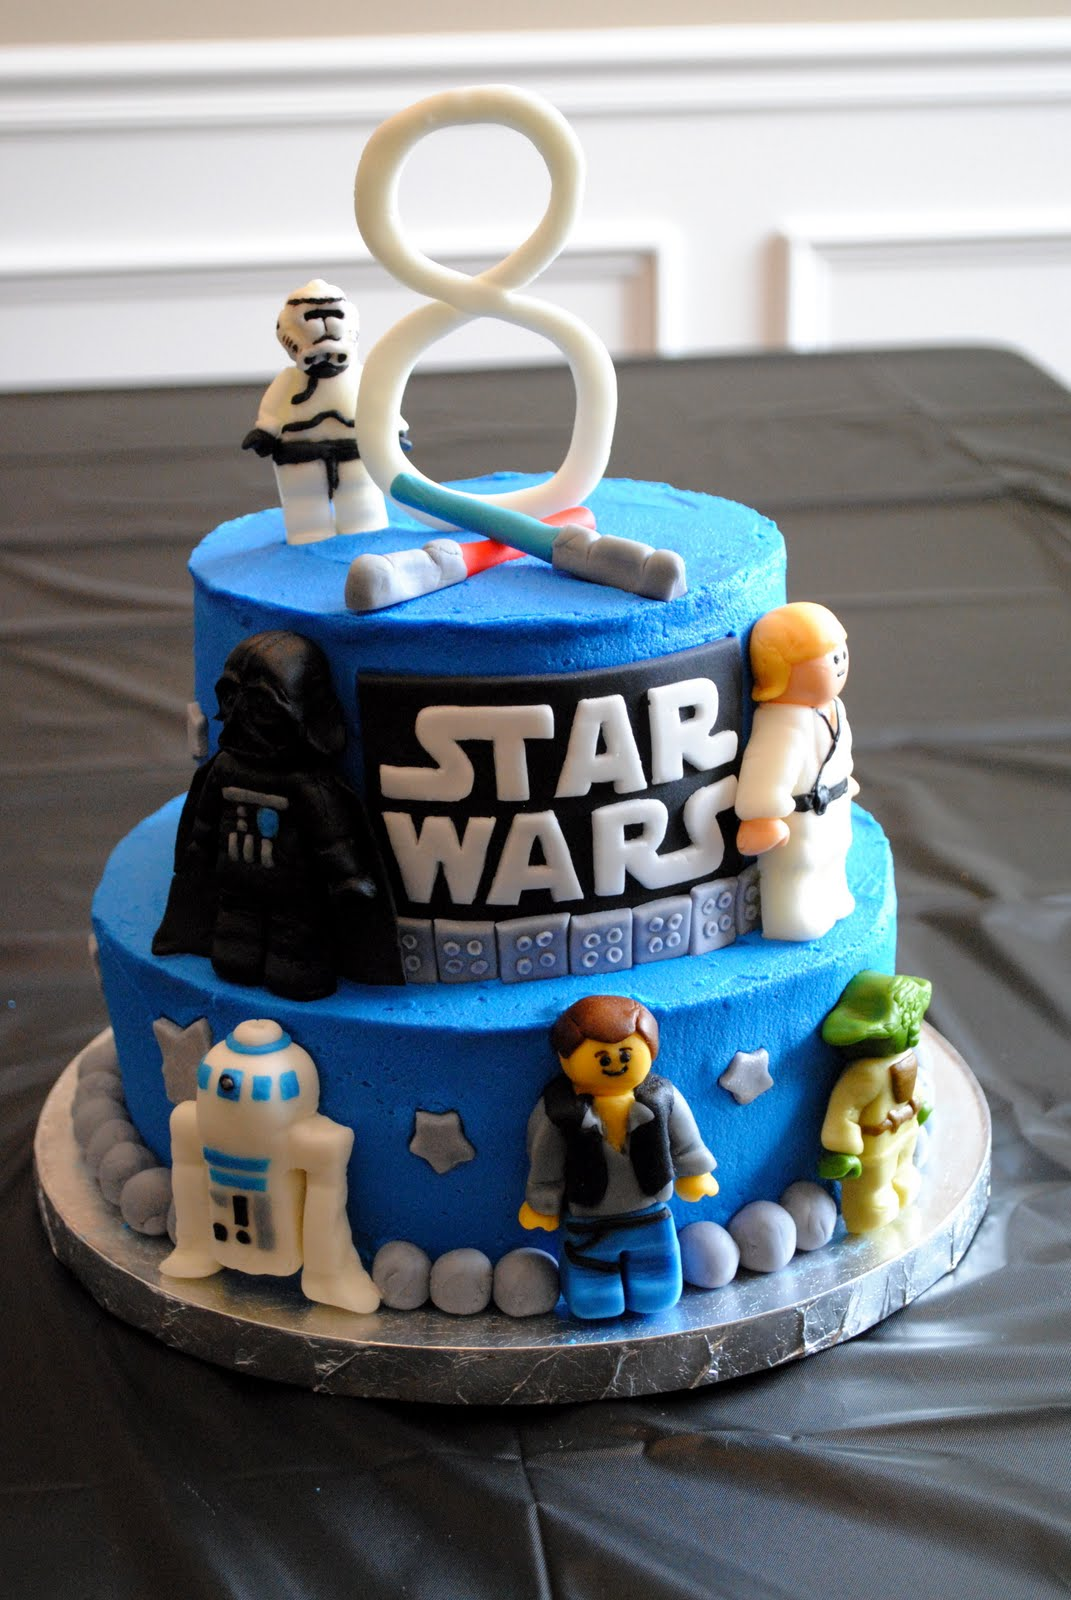 birthday cake star wars lego birthday cakes. Black Bedroom Furniture Sets. Home Design Ideas